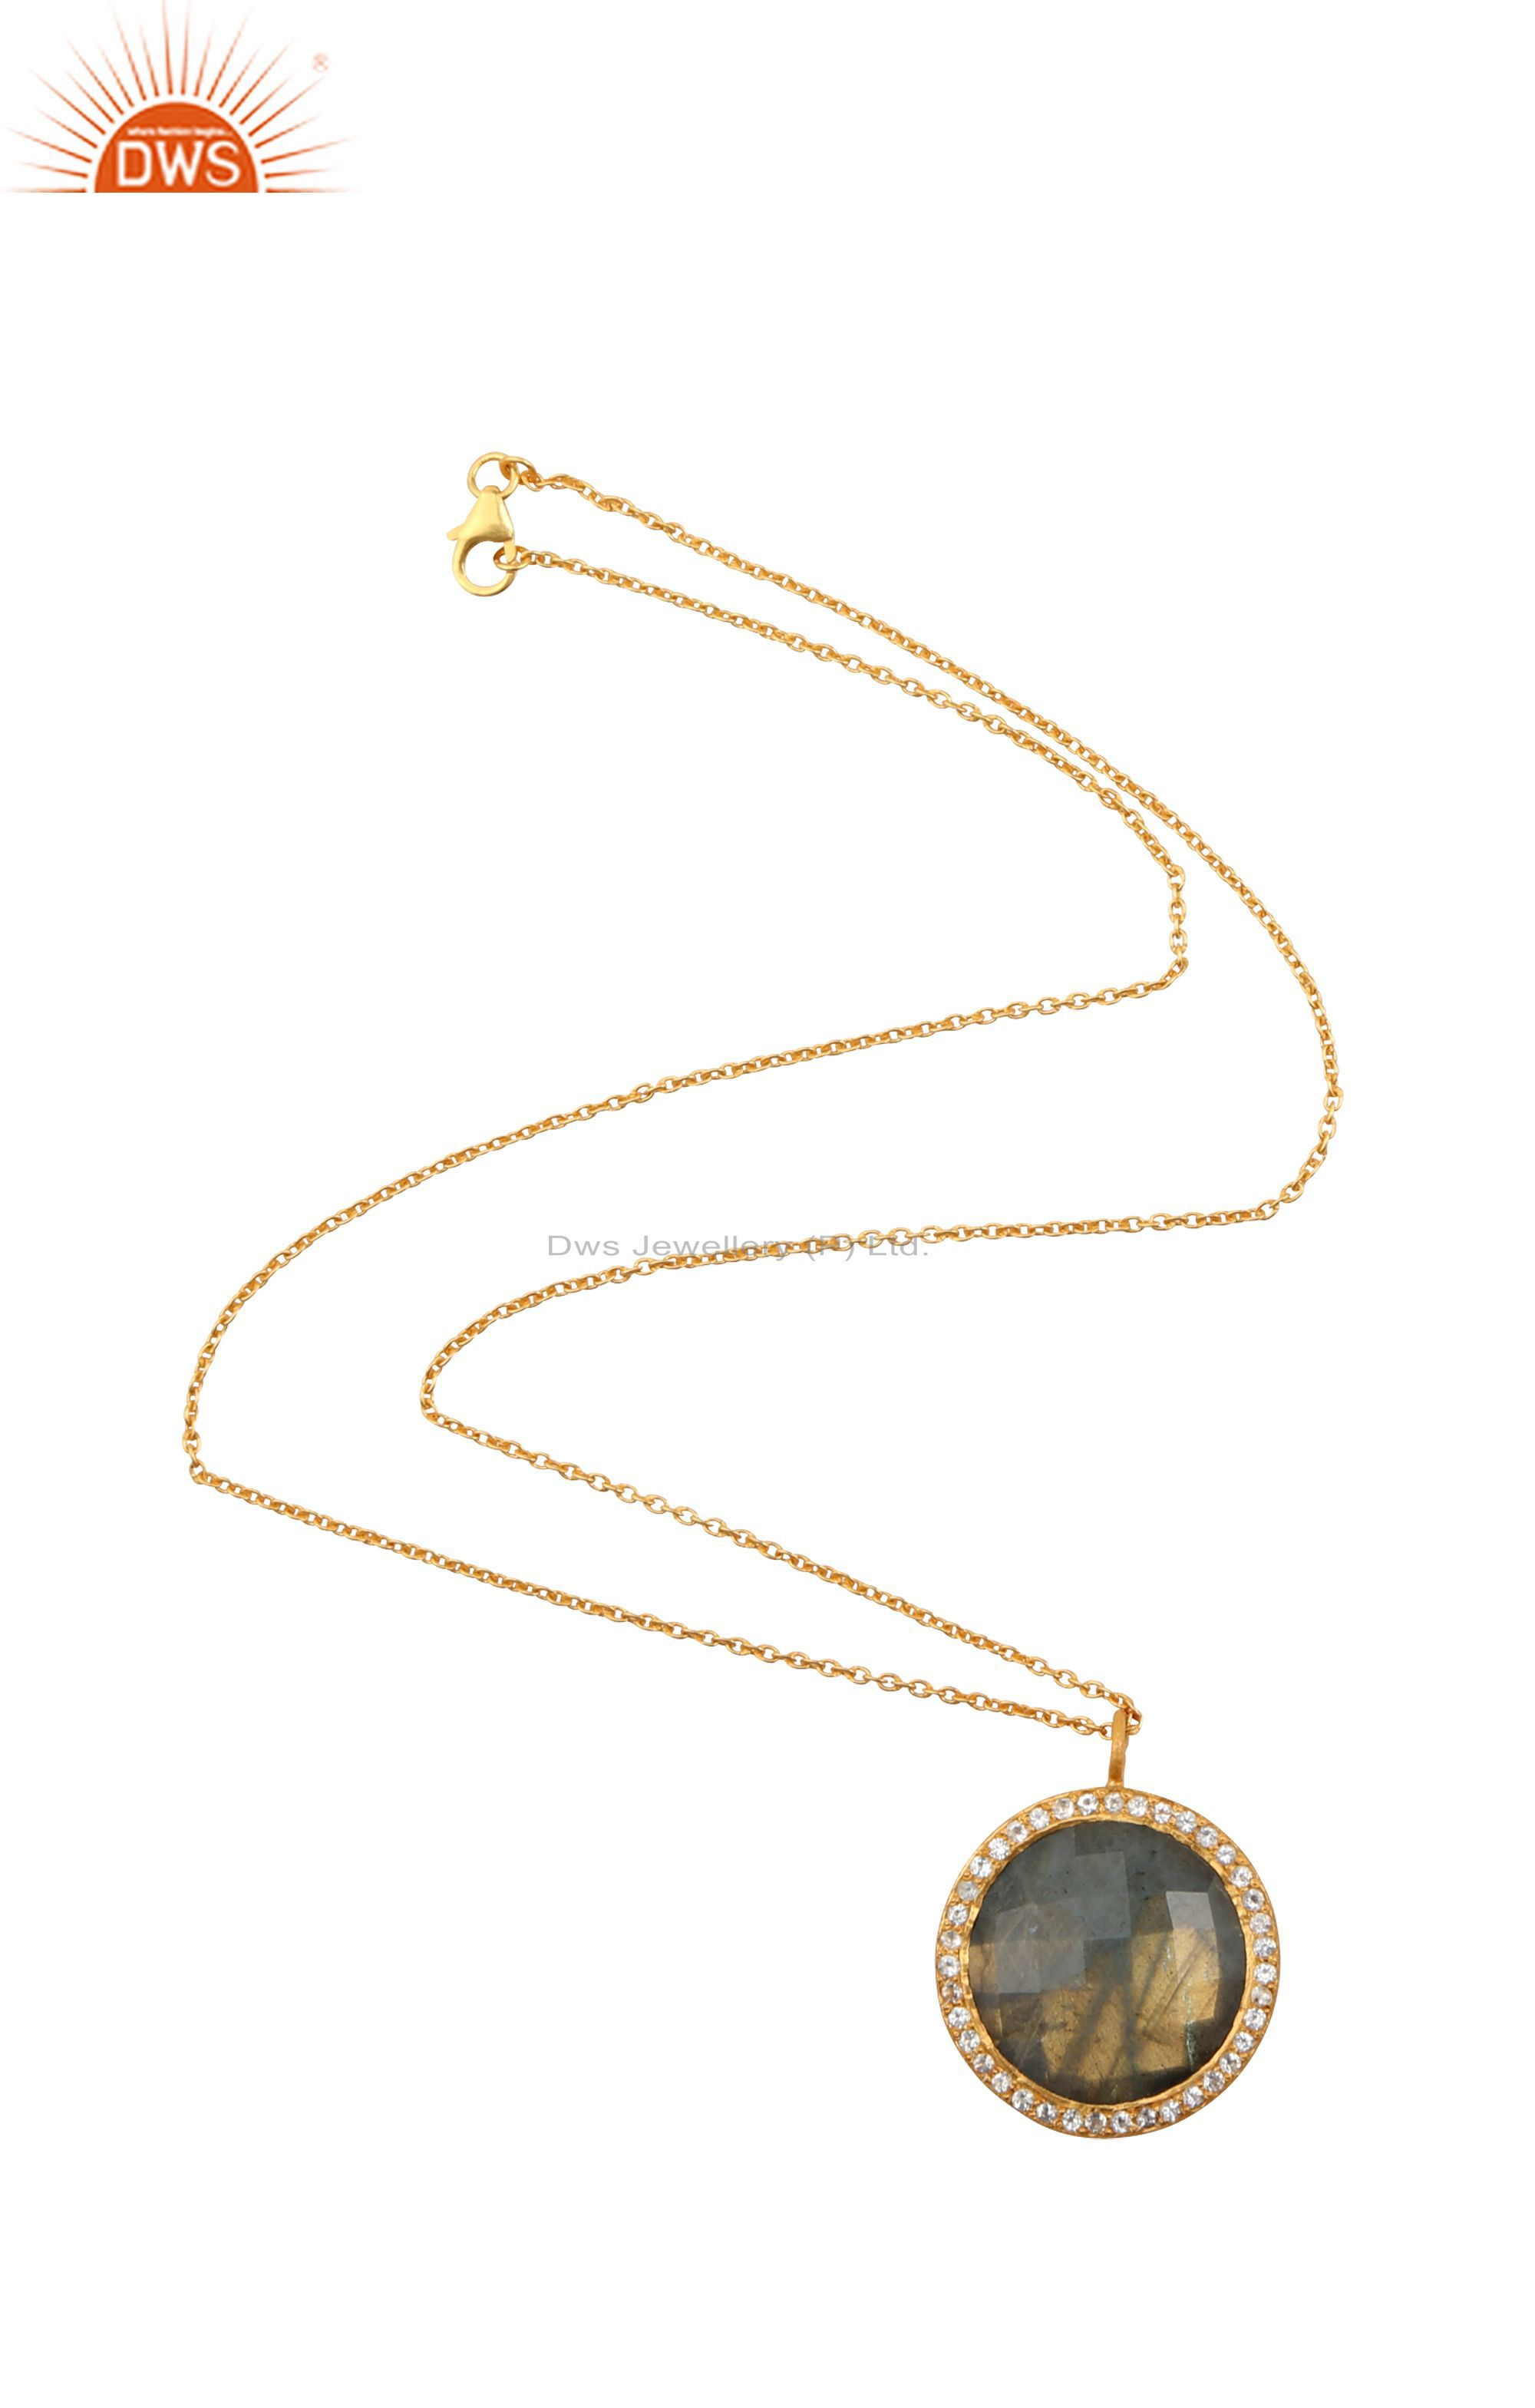 18K Yellow Gold Plated Silver Labradorite And White Topaz Pendant With Chain